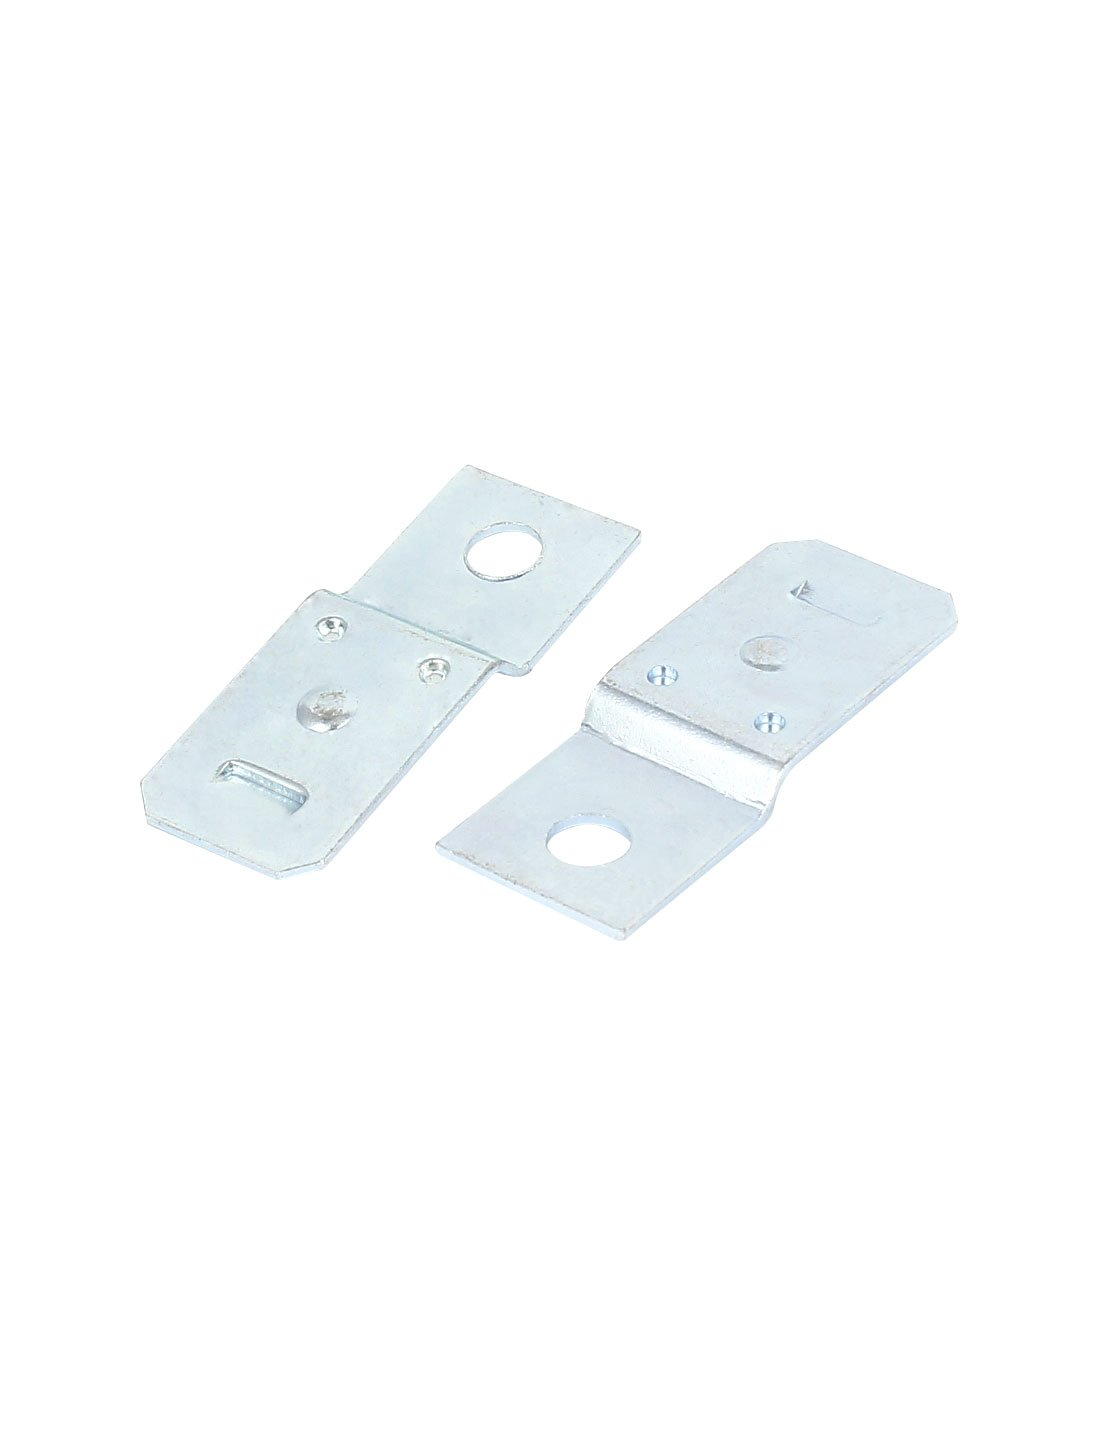 5 Pcs 5mm Hole Diameter Silver Tone Relay Bracket